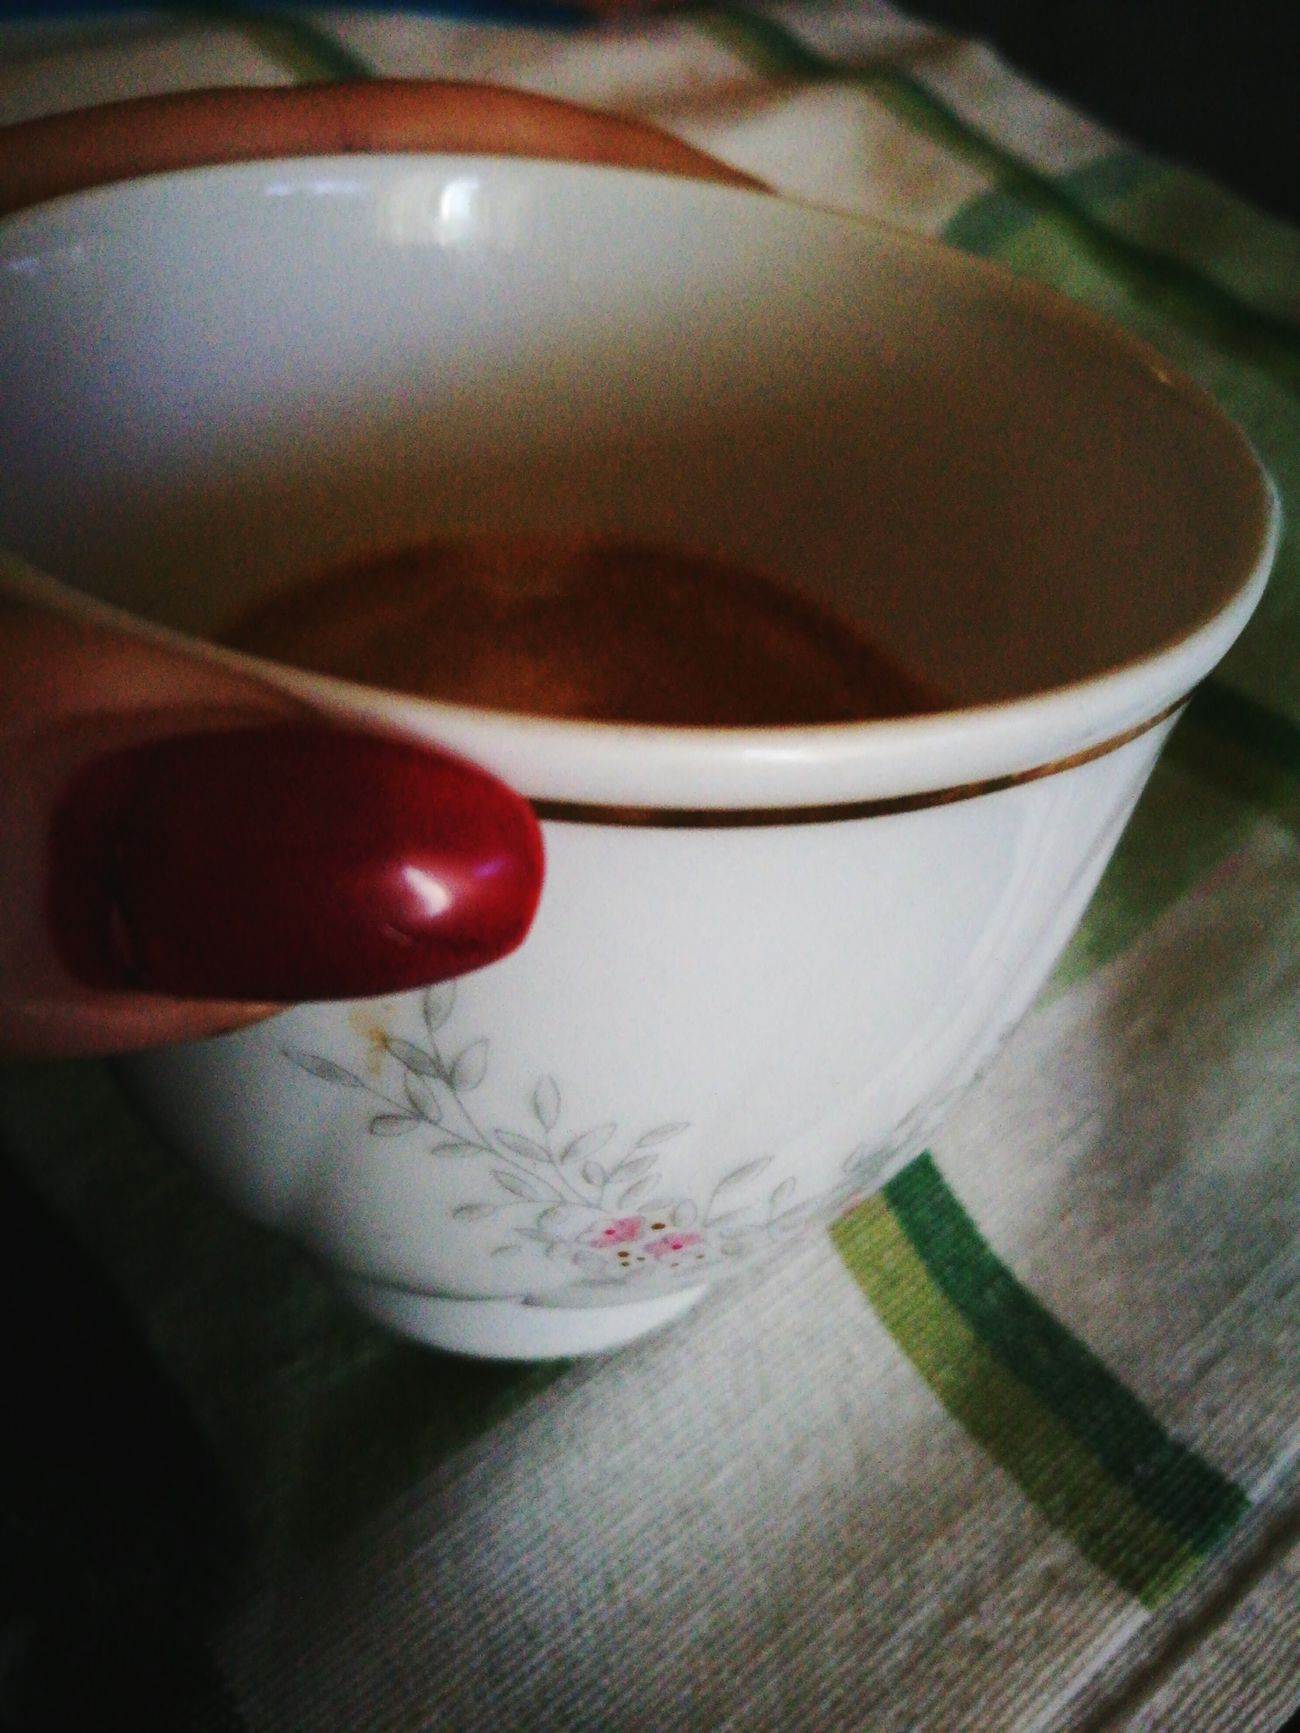 Morning Day Morning Morning Coffee Morning Light Breakfast ♥ One Person Human Body Part Close-up Real People People Indoors  Adults Only Human Lips Adult Human Hand Relaxing cup Cupofcoffee Cup Breaktime Morning View Mornings